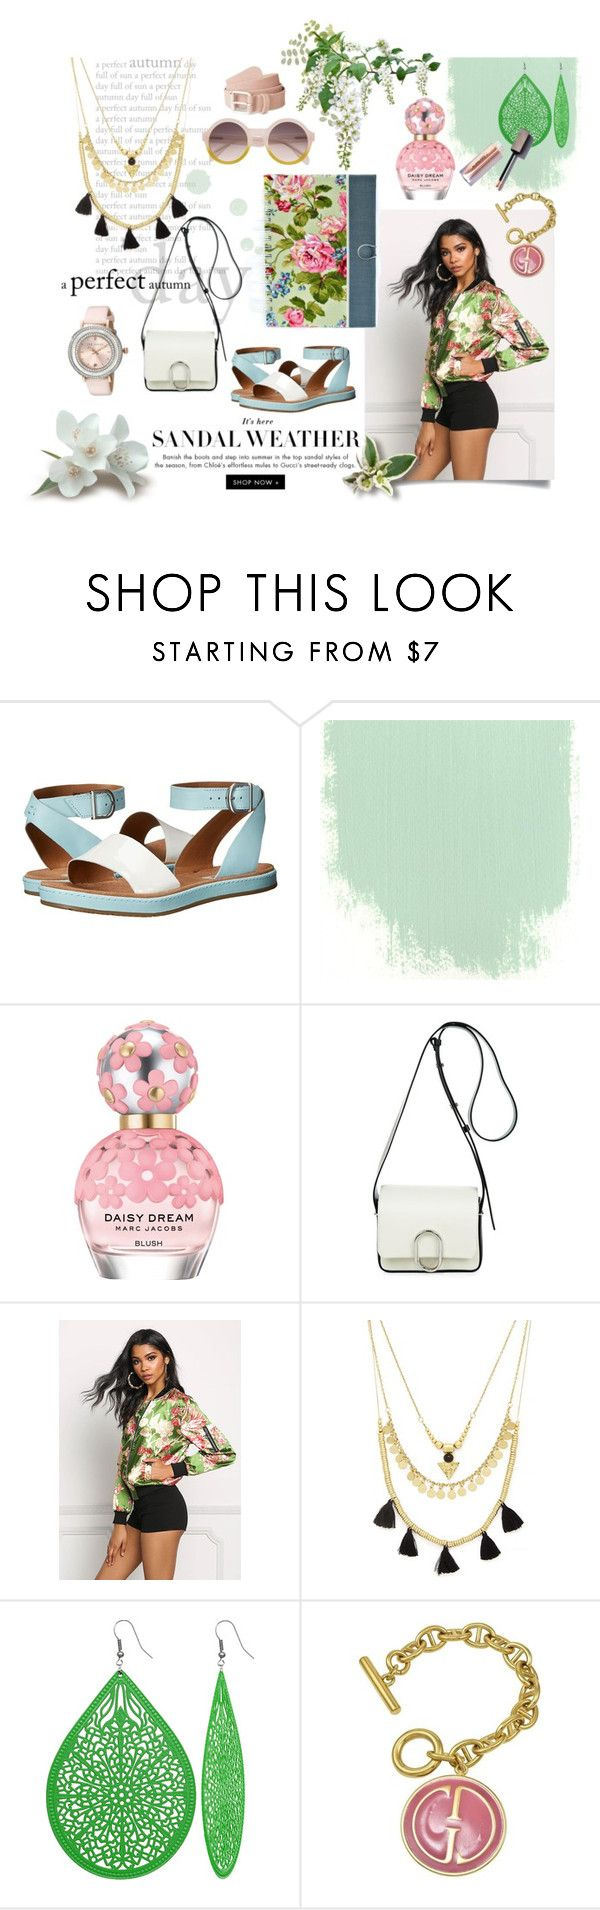 """""""Sandal weather"""" by iwona-estera on Polyvore featuring Clarks, Marc Jacobs, 3.1 Phillip Lim, Forever 21, Gucci and Ted Baker"""